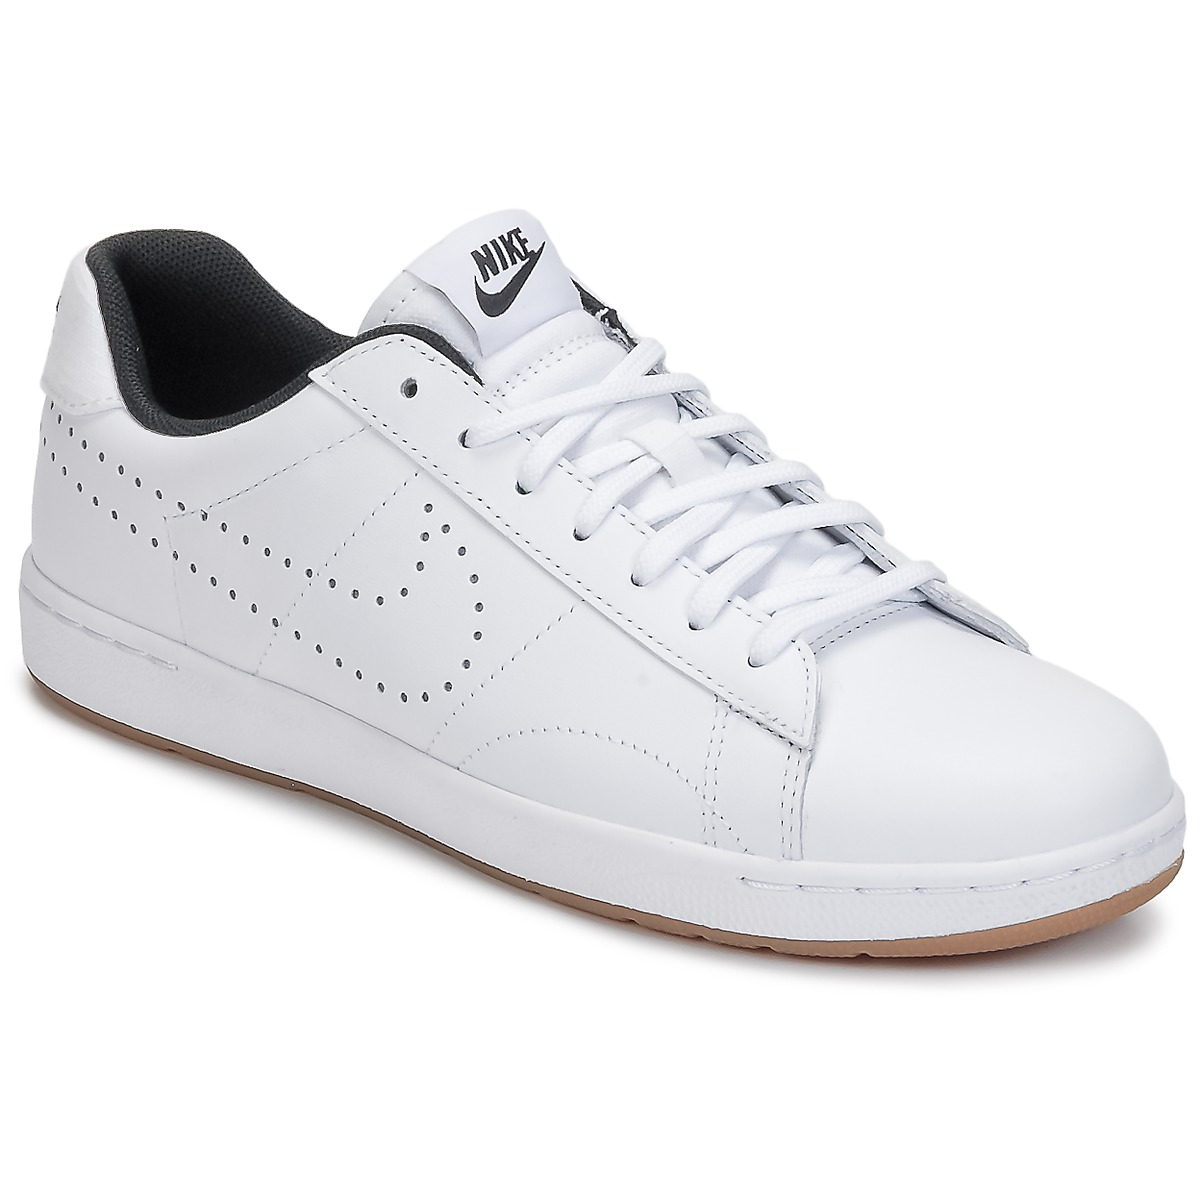 Nike TENNIS CLASSIC ULTRA LEATHER W Blanc / Noir